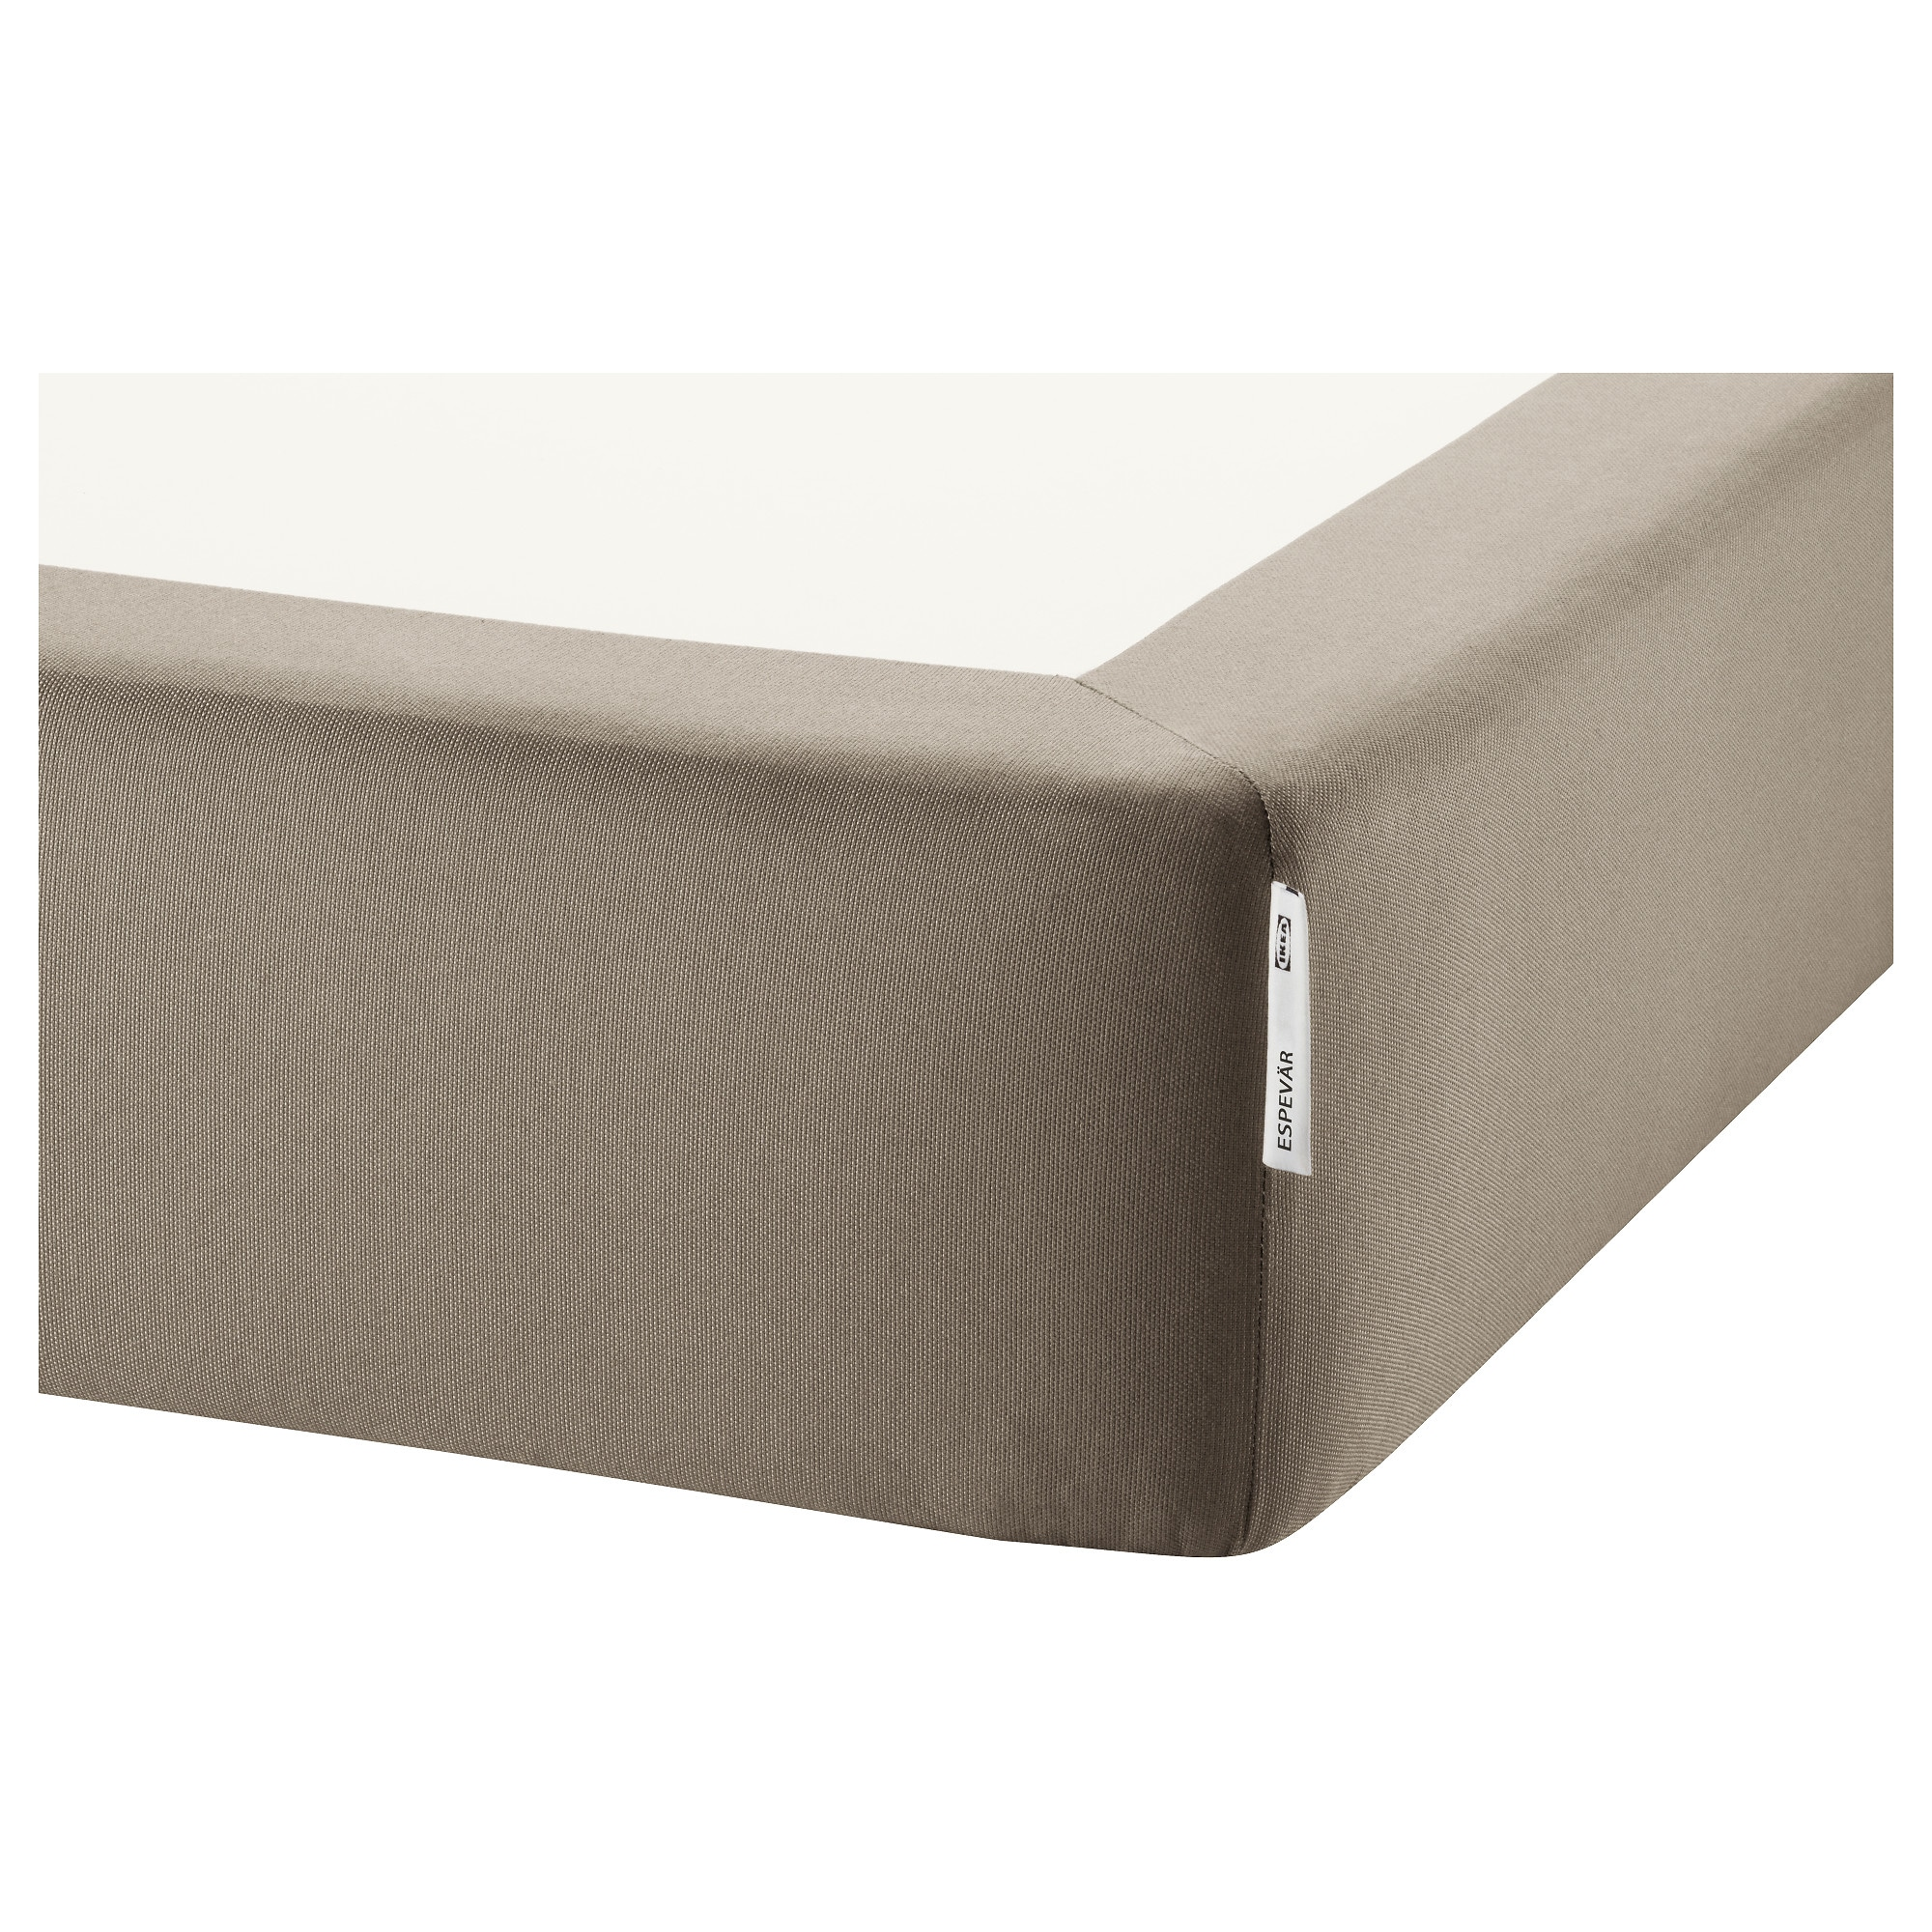 Single bedroom top view - Espev R Slatted Mattress Base For Bed Frame Dark Beige Length 79 1 2